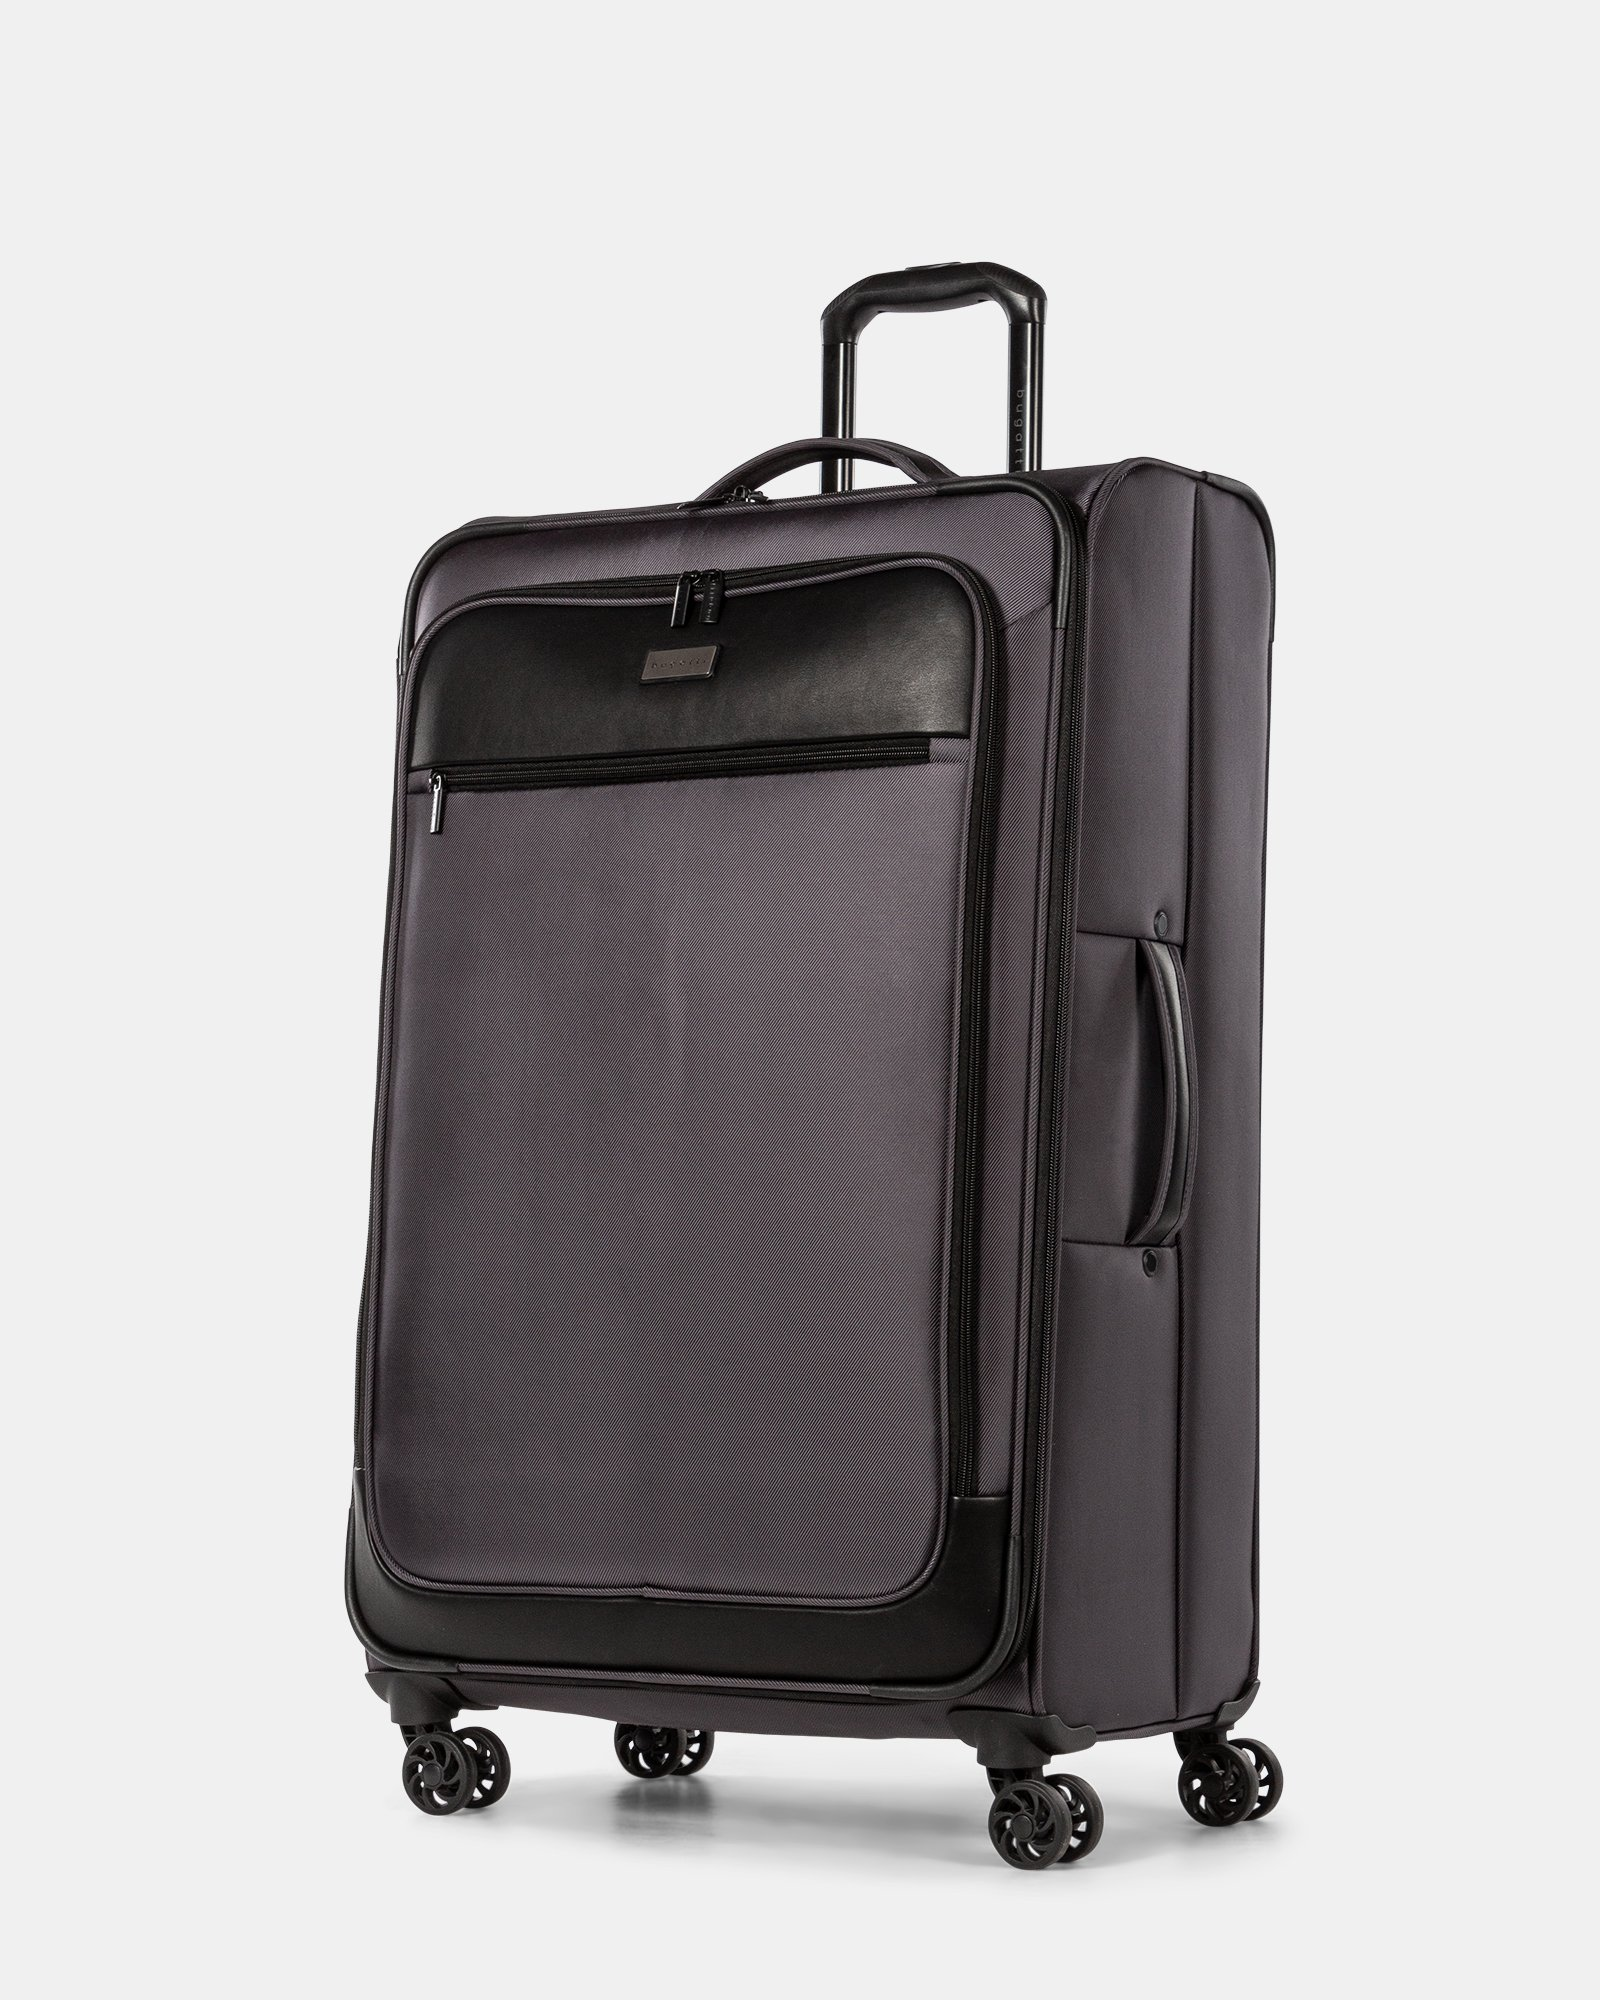 Boston - Lightweight Softside 28'' Luggage with Zipper-release expansion system - Charcoal - Bugatti - Zoom